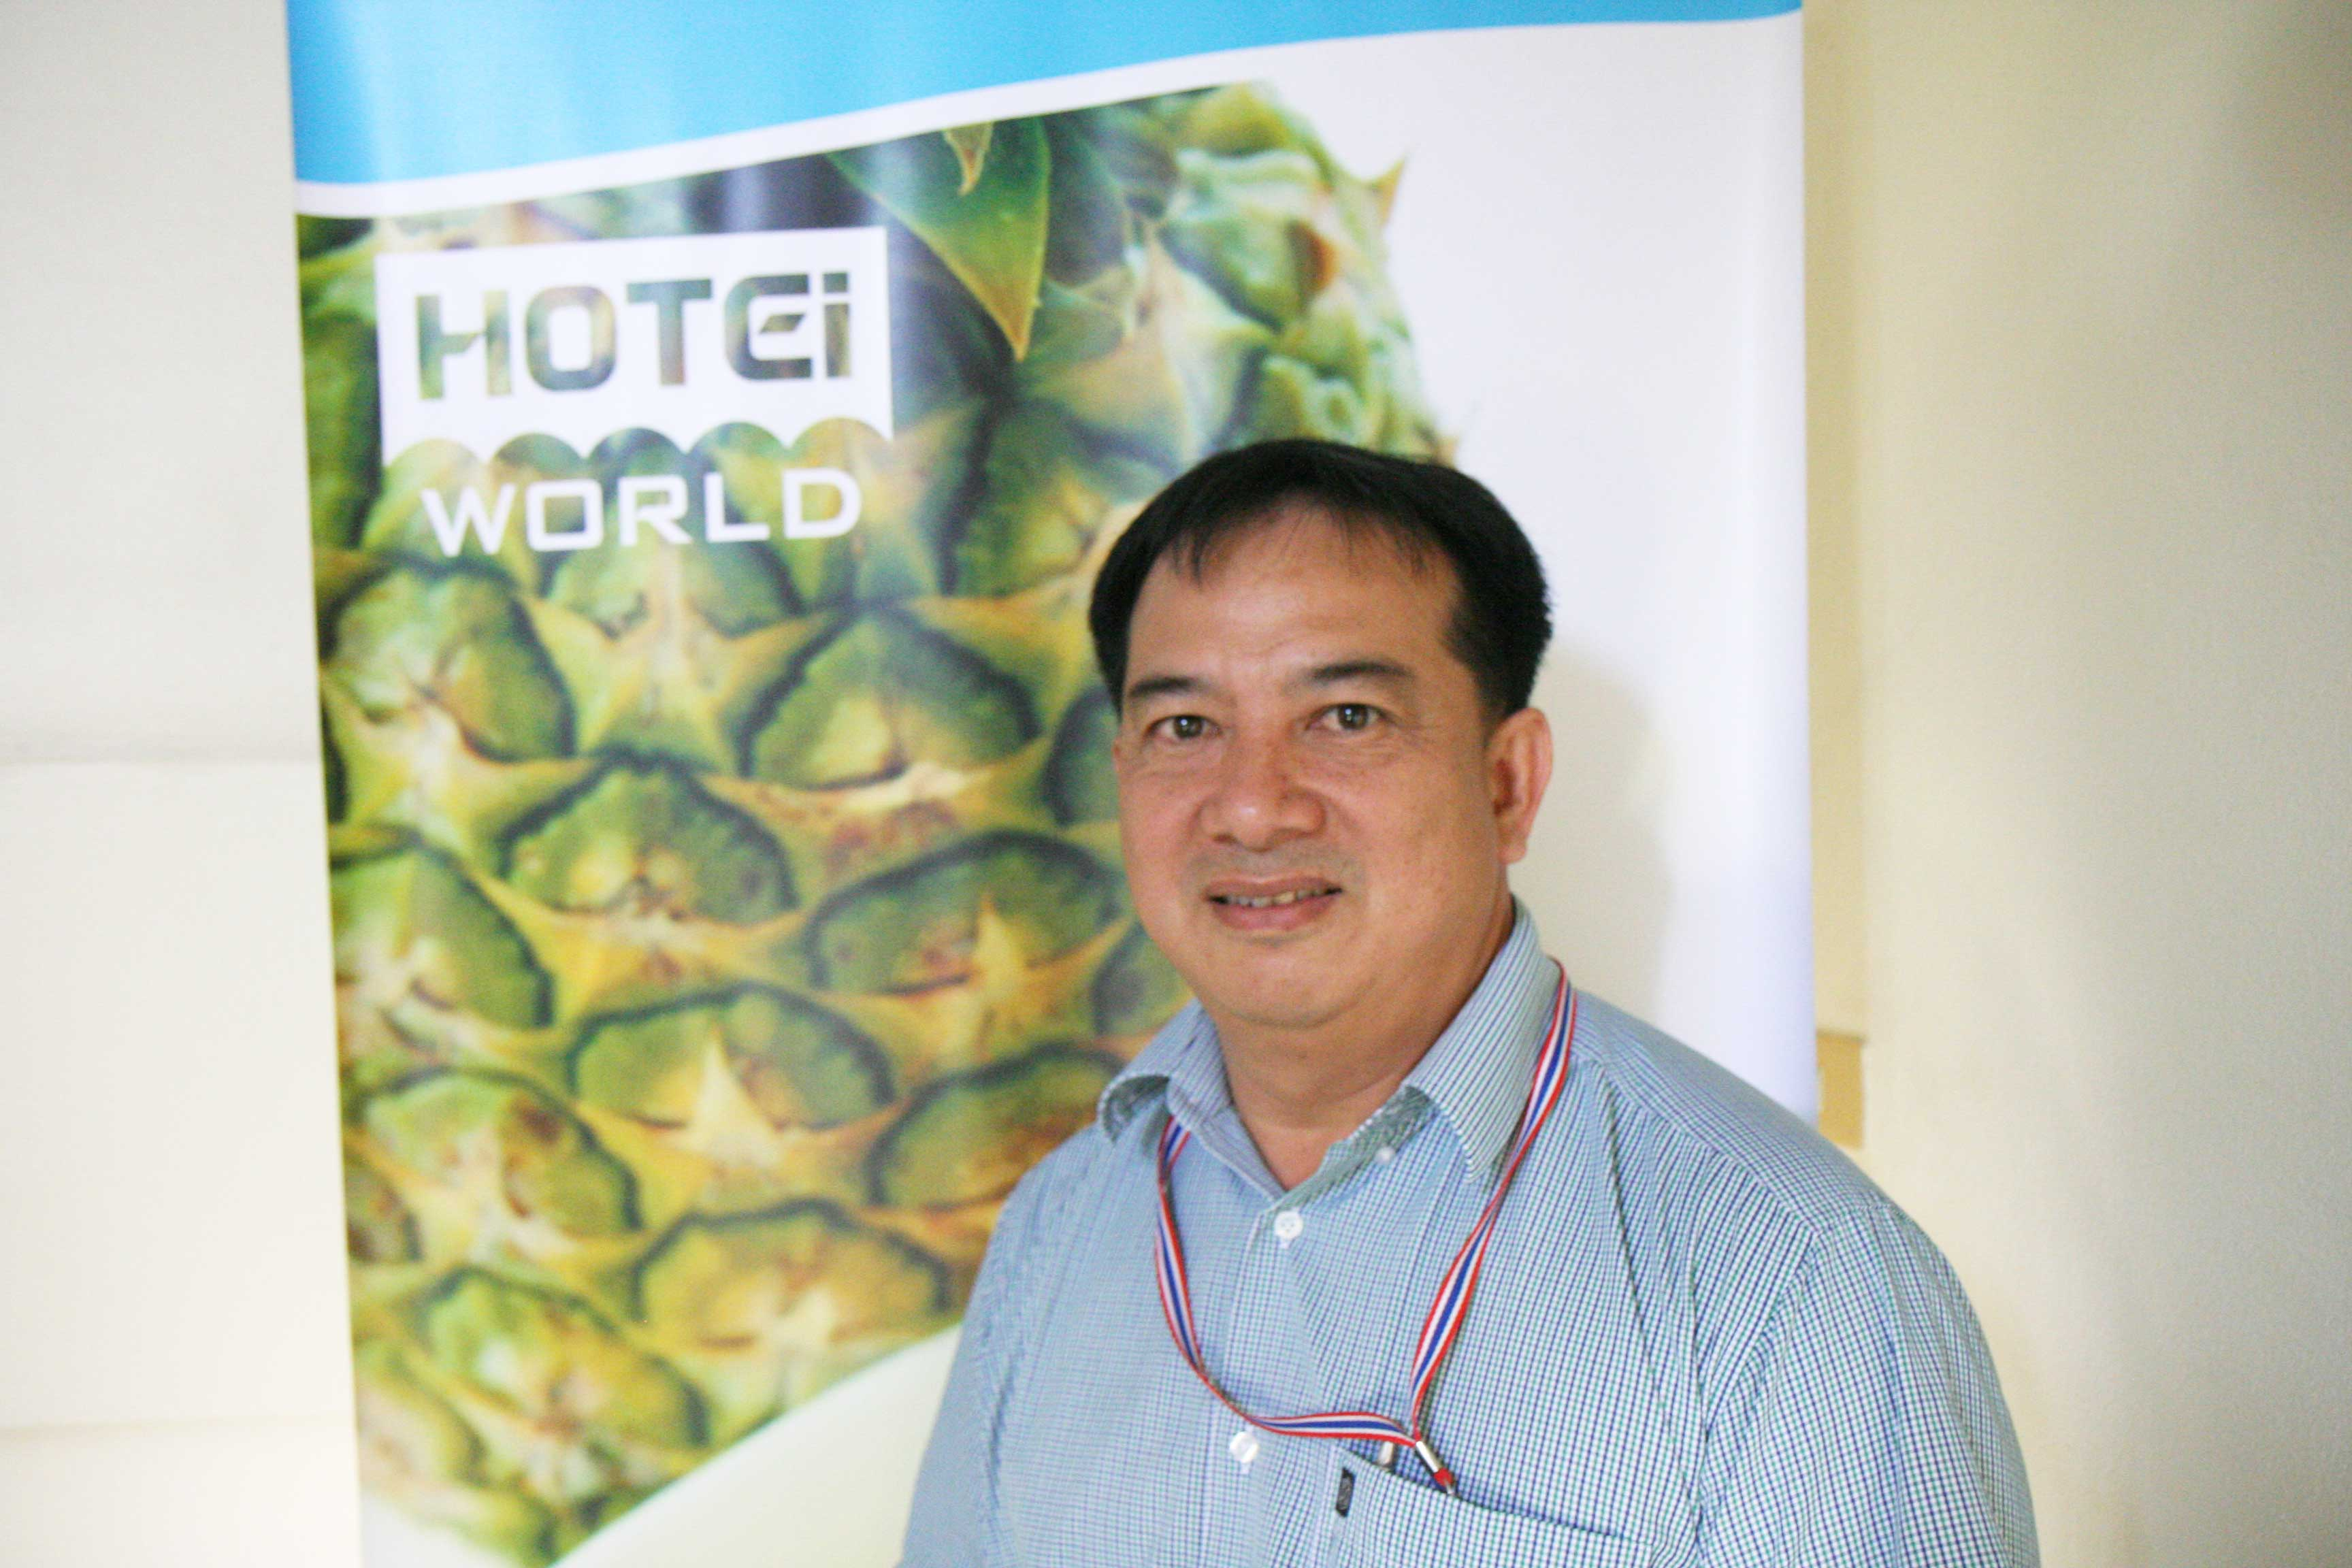 Mr. Somneug Wantem, Factory Manager of Pranburi Hotei in Kuiburi